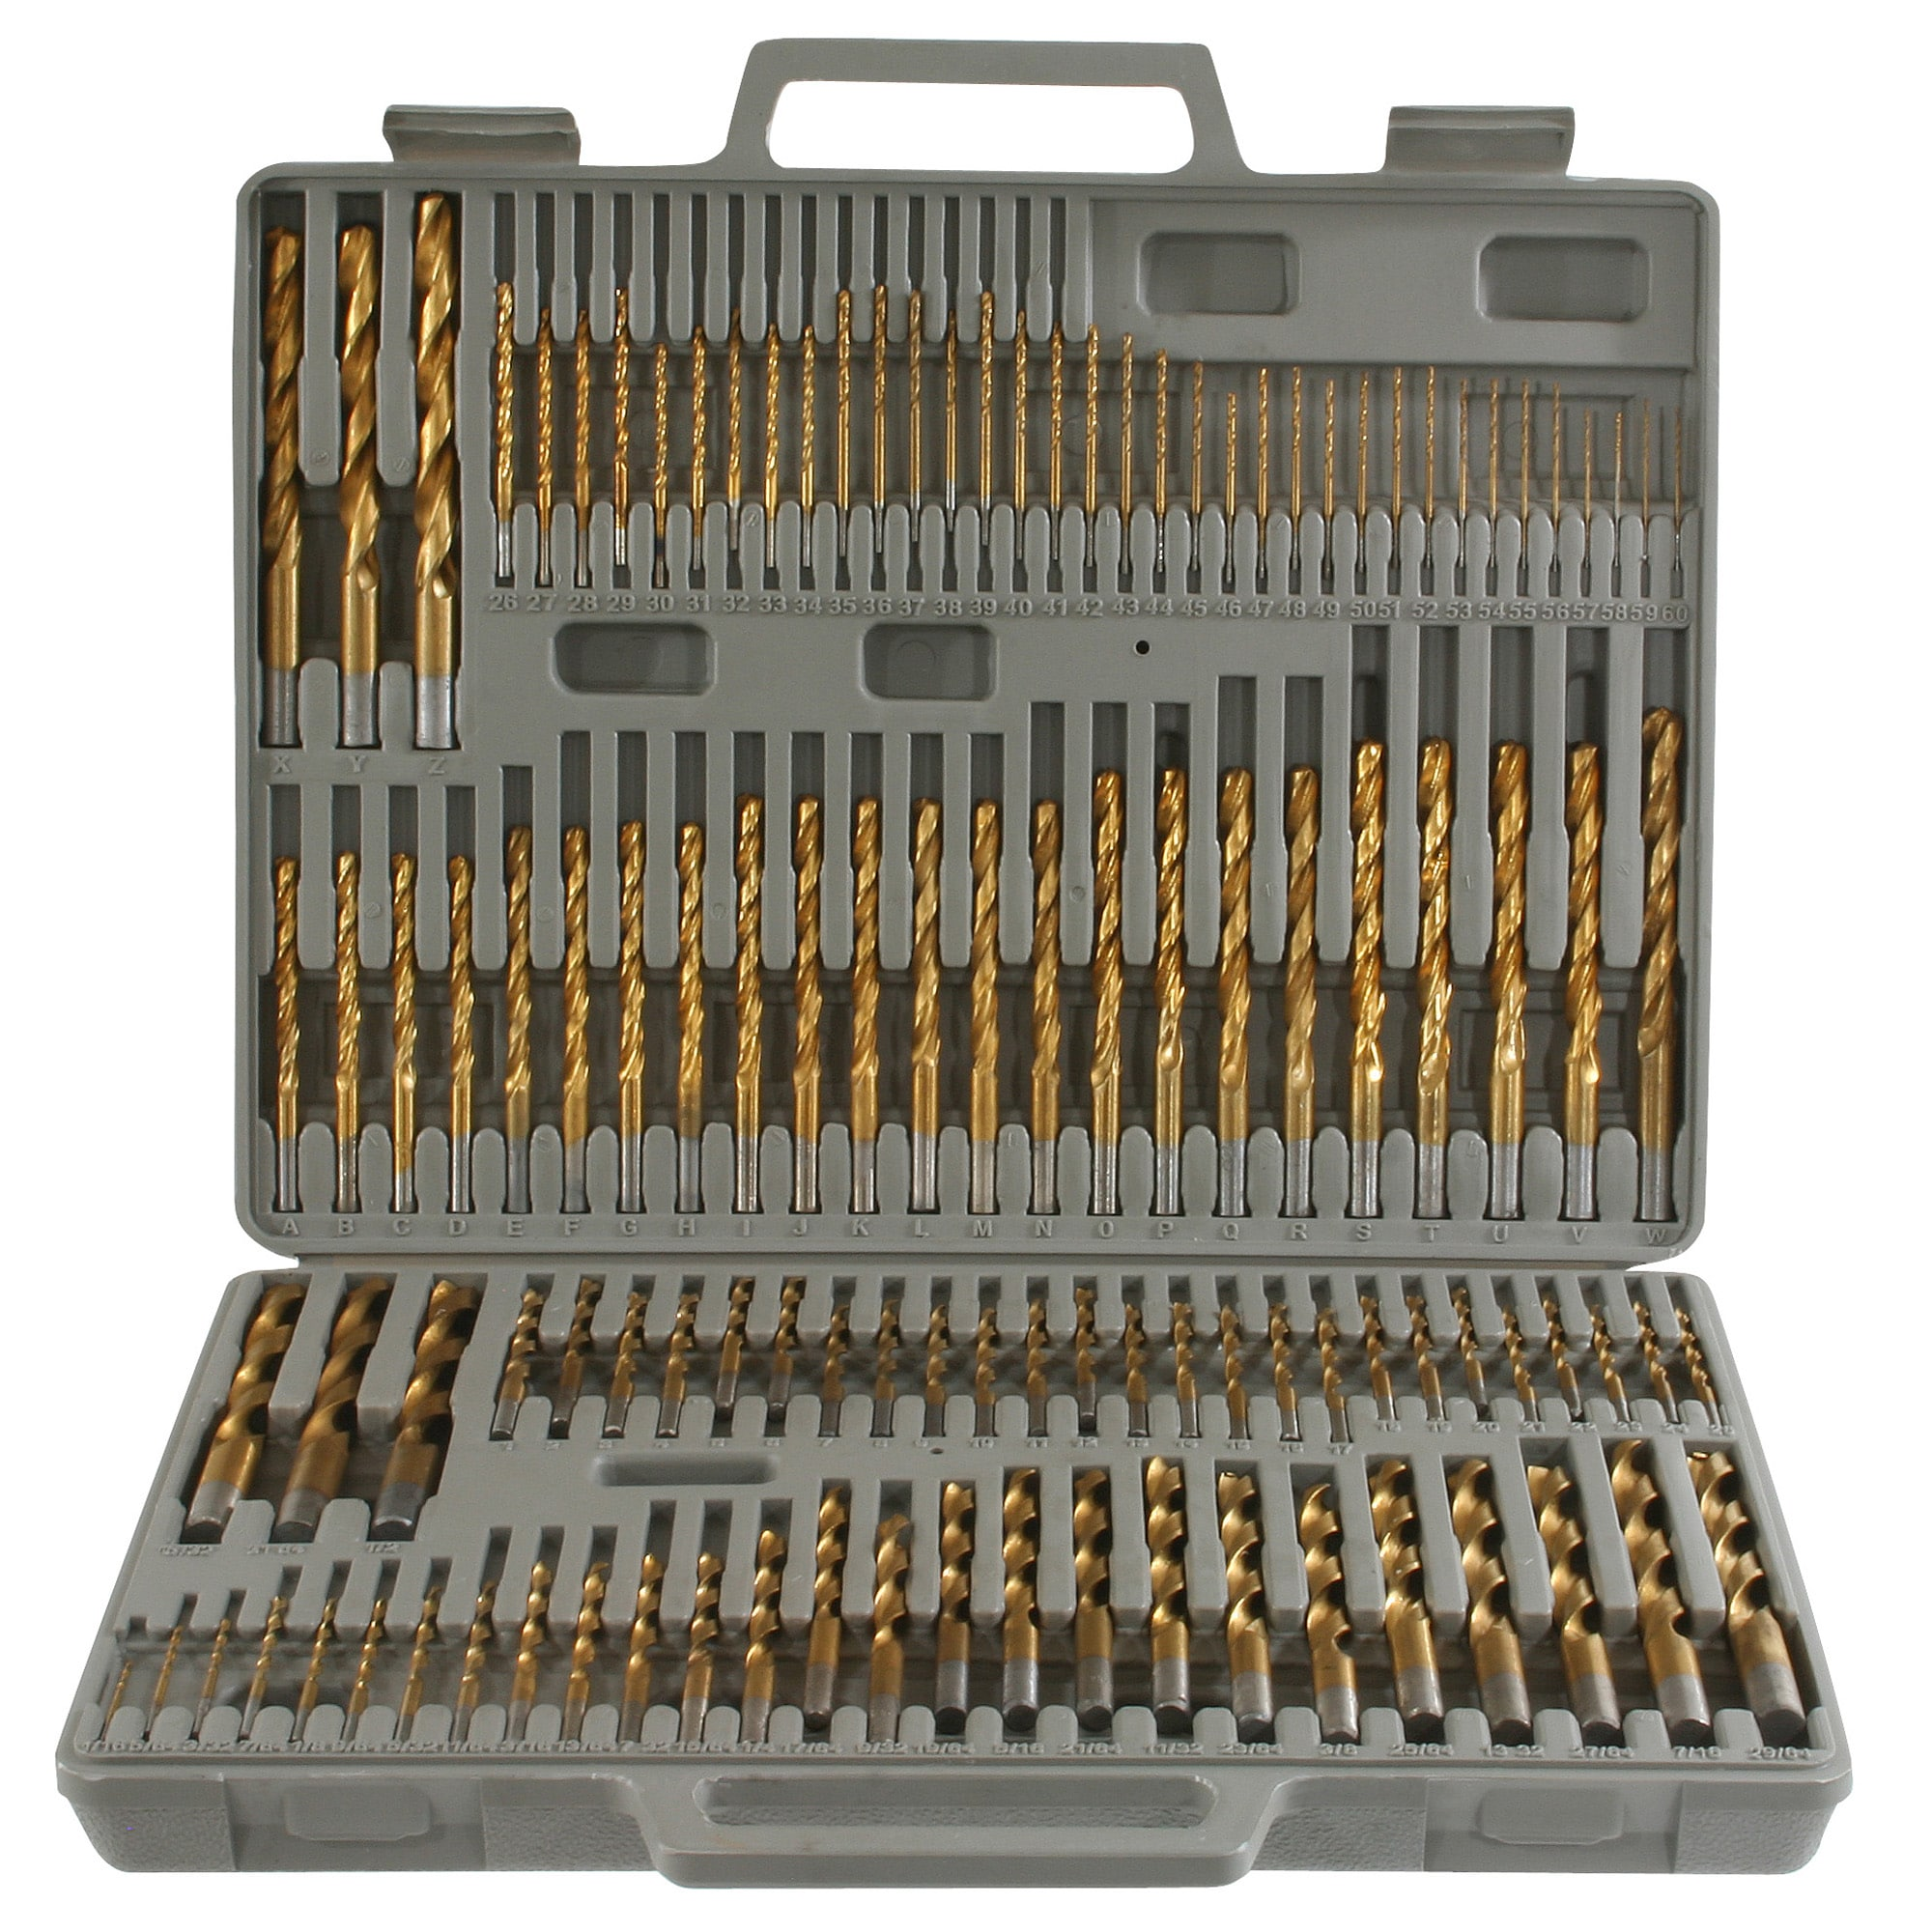 Combination Drill Bit Set W// Portable Carry Case Storage Power Tool 326-Piece